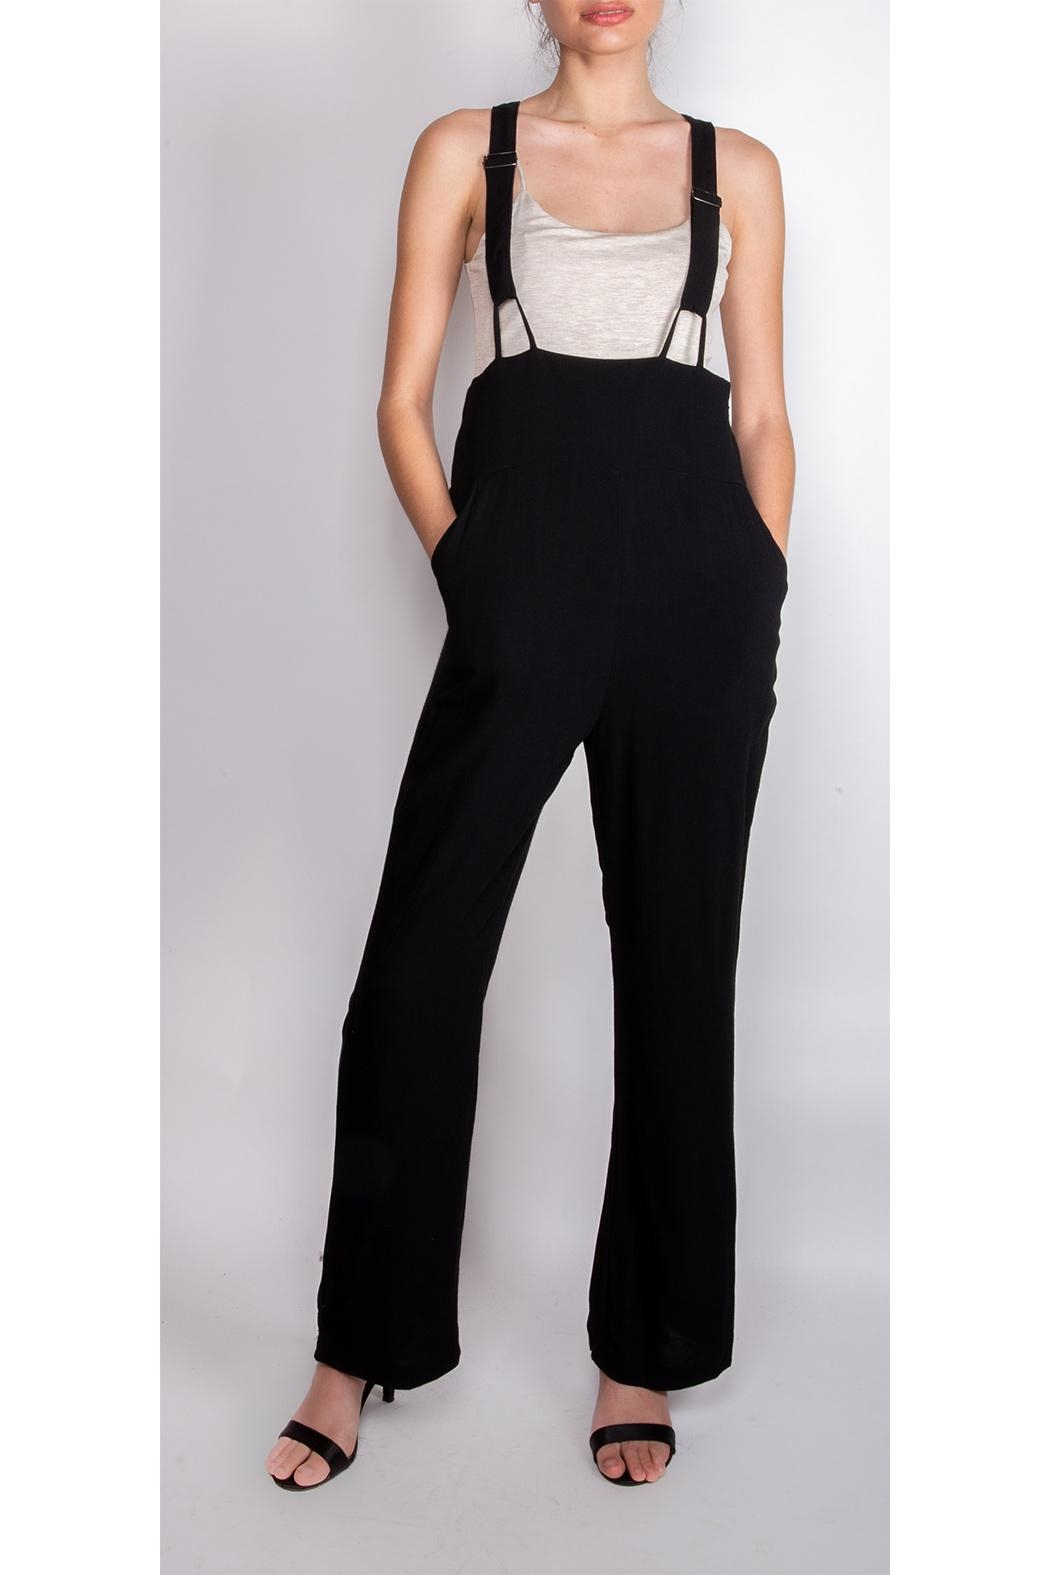 Illa Illa High-Waisted Suspender Pants - Front Cropped Image